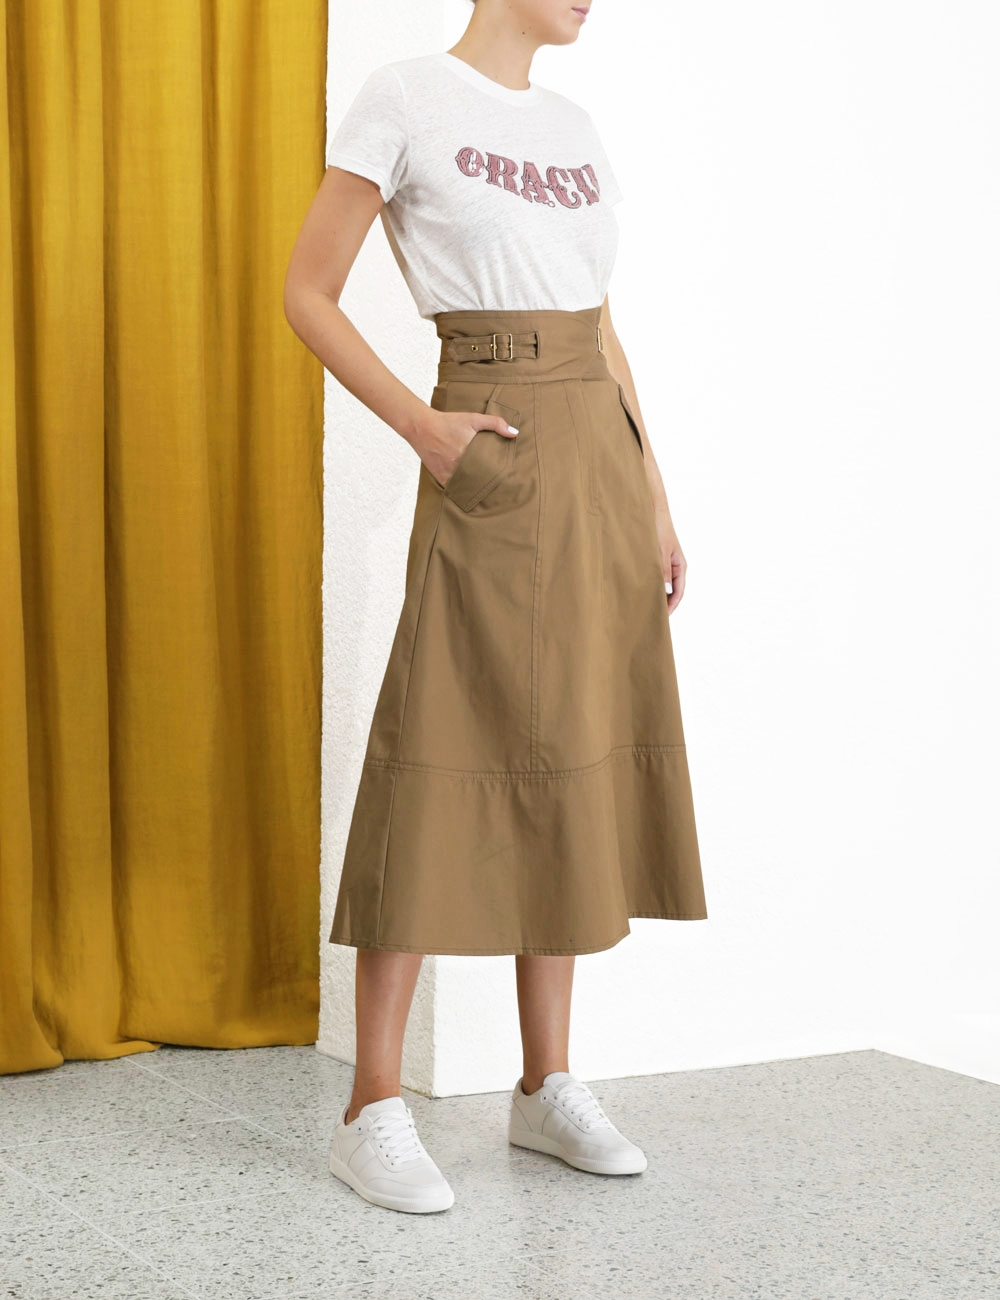 Ladybeetle Buckle Skirt